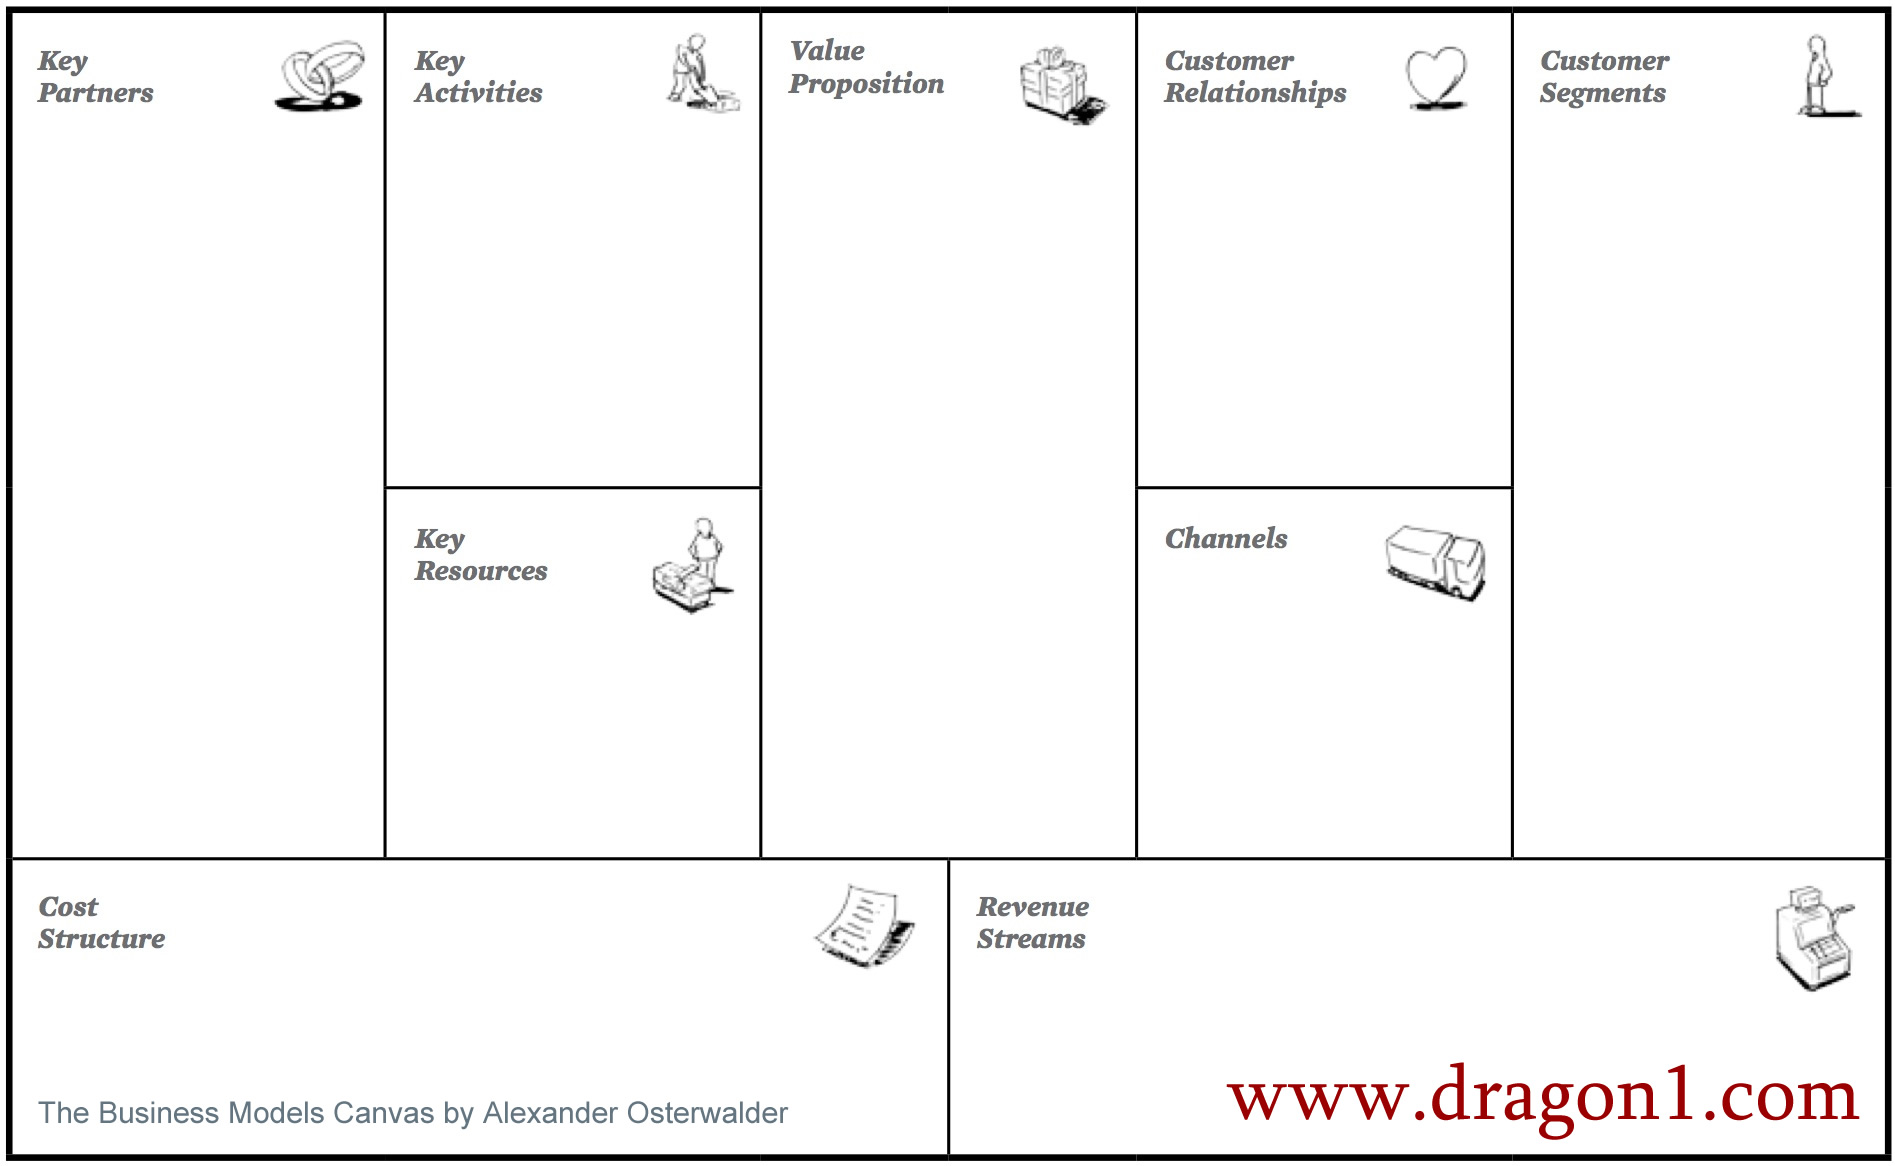 Business model canvas template dragon1 business model canvas template accmission